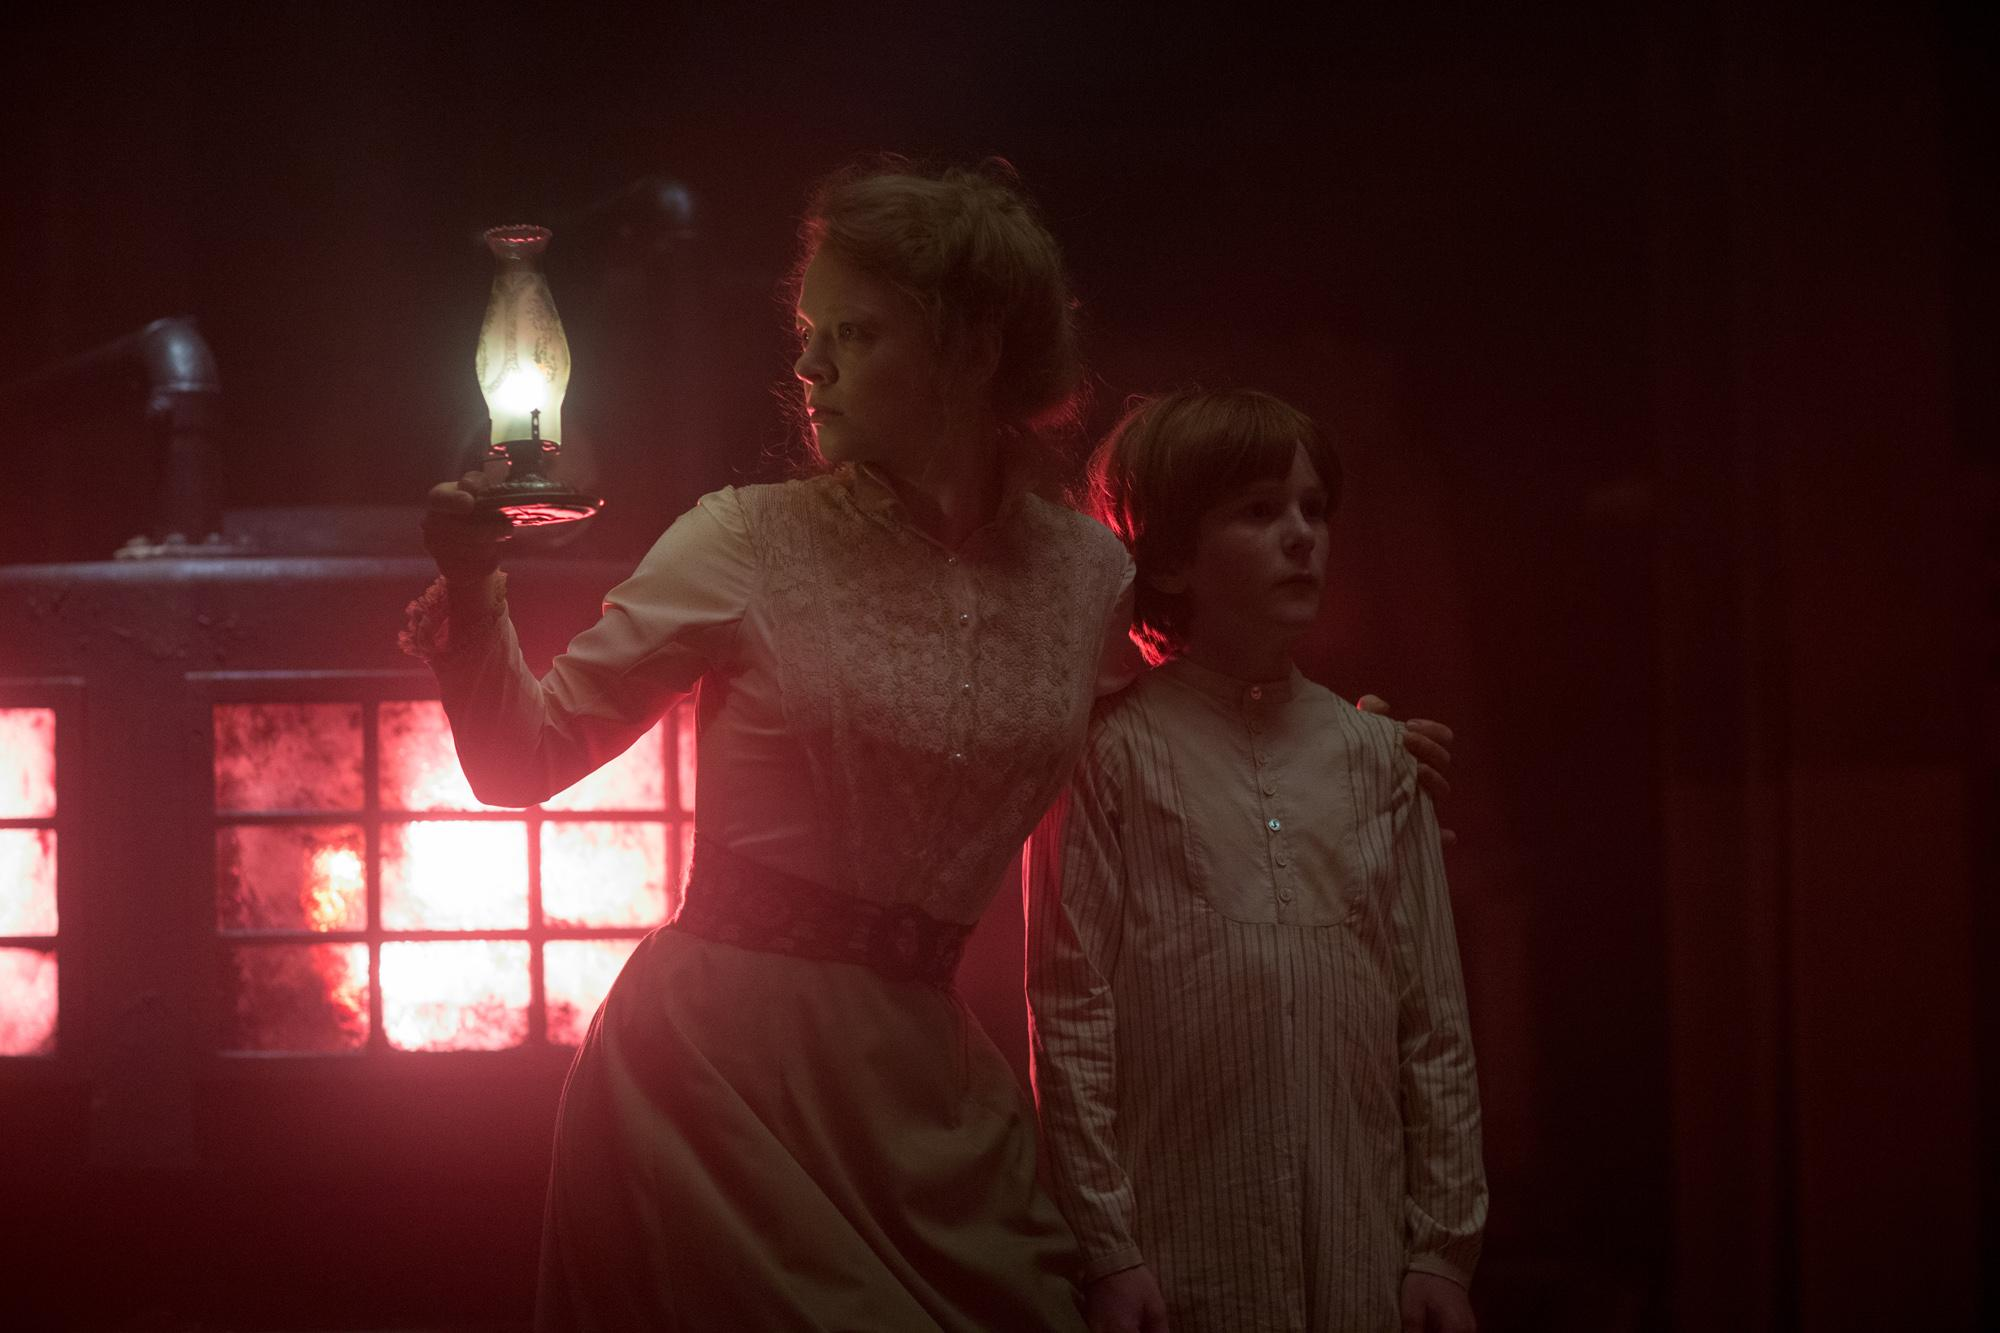 <p>Sarah Snook and Finn Scicluna-O'Prey in WINCHESTER to be released by CBS Films and Lionsgate. (Photo: CBS Films)</p>